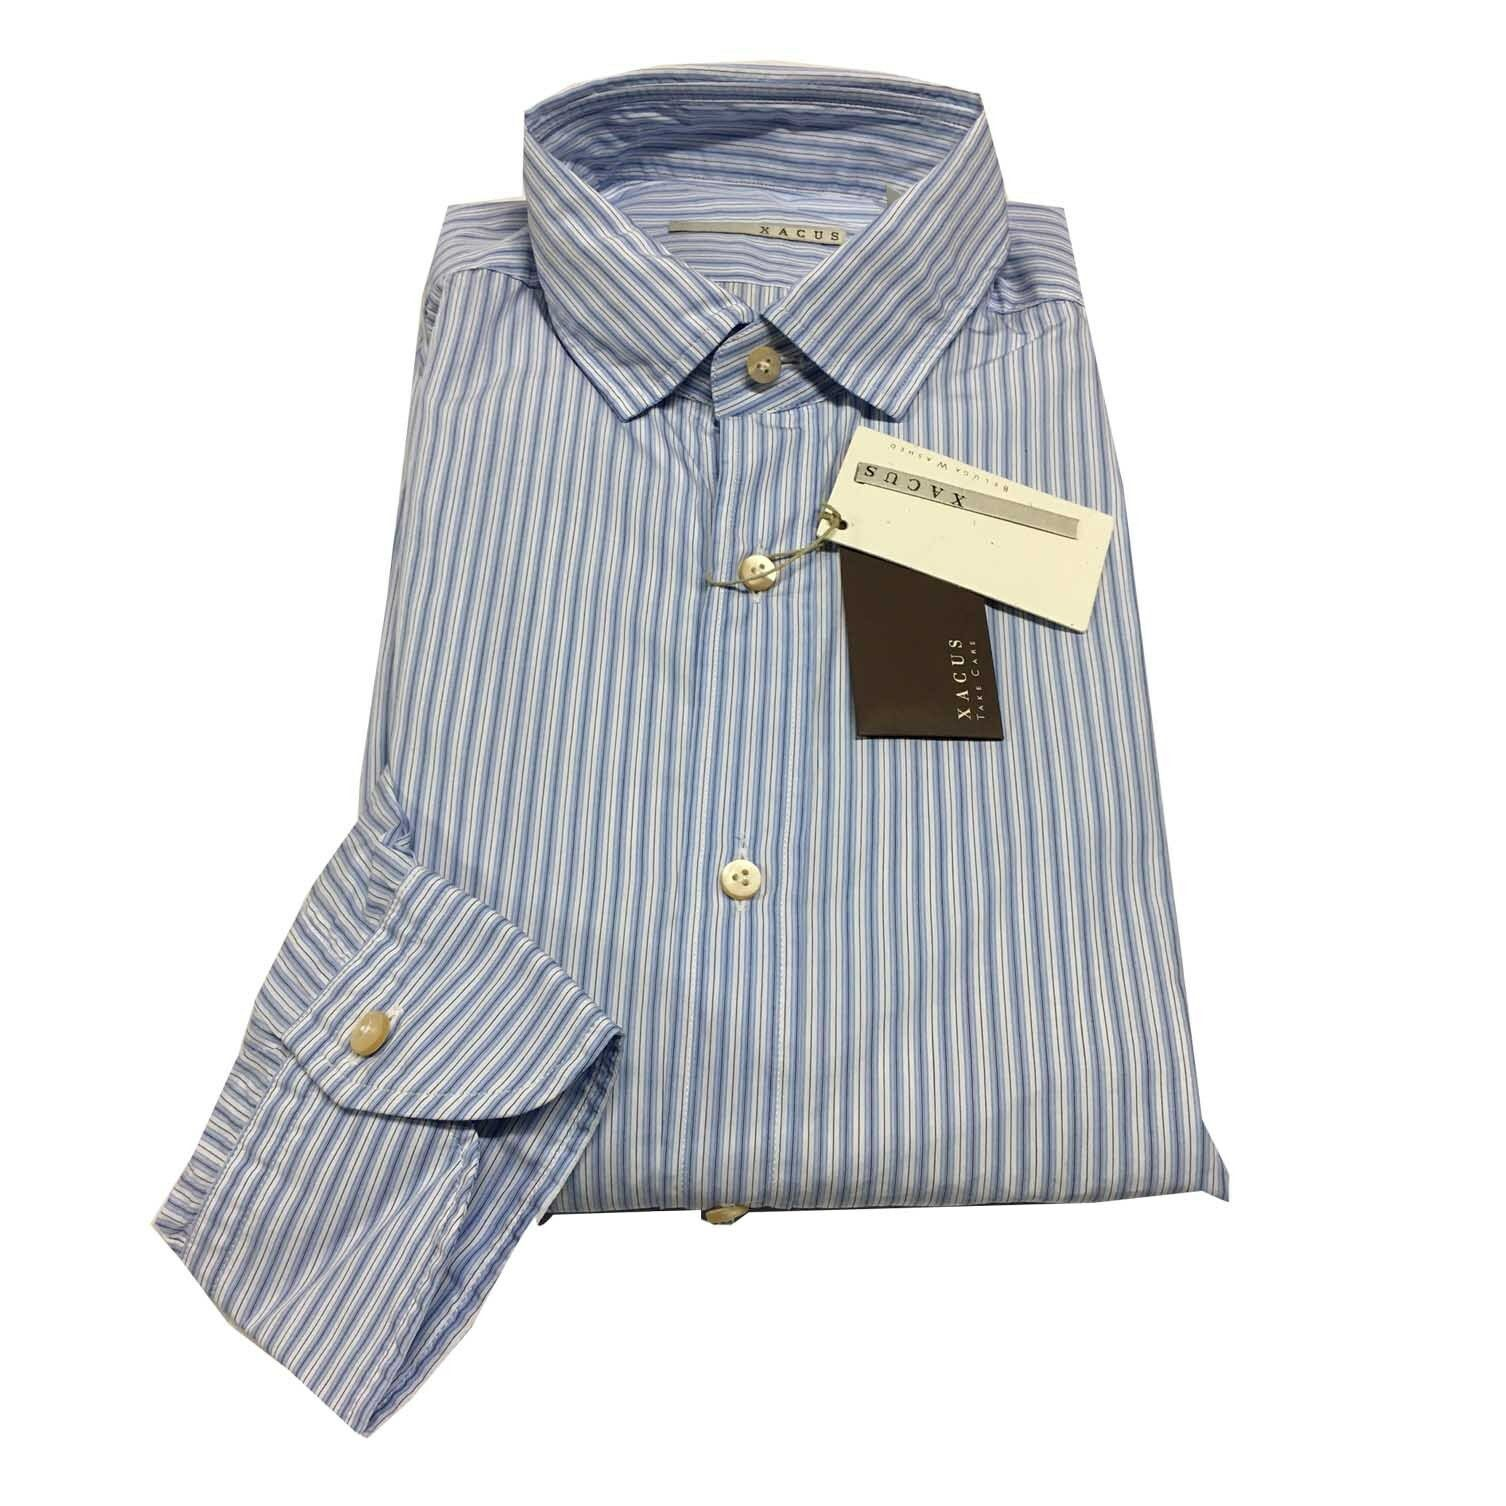 XACUS men's shirts striped baby bluee washed slim fit 100% cotton ALBINI